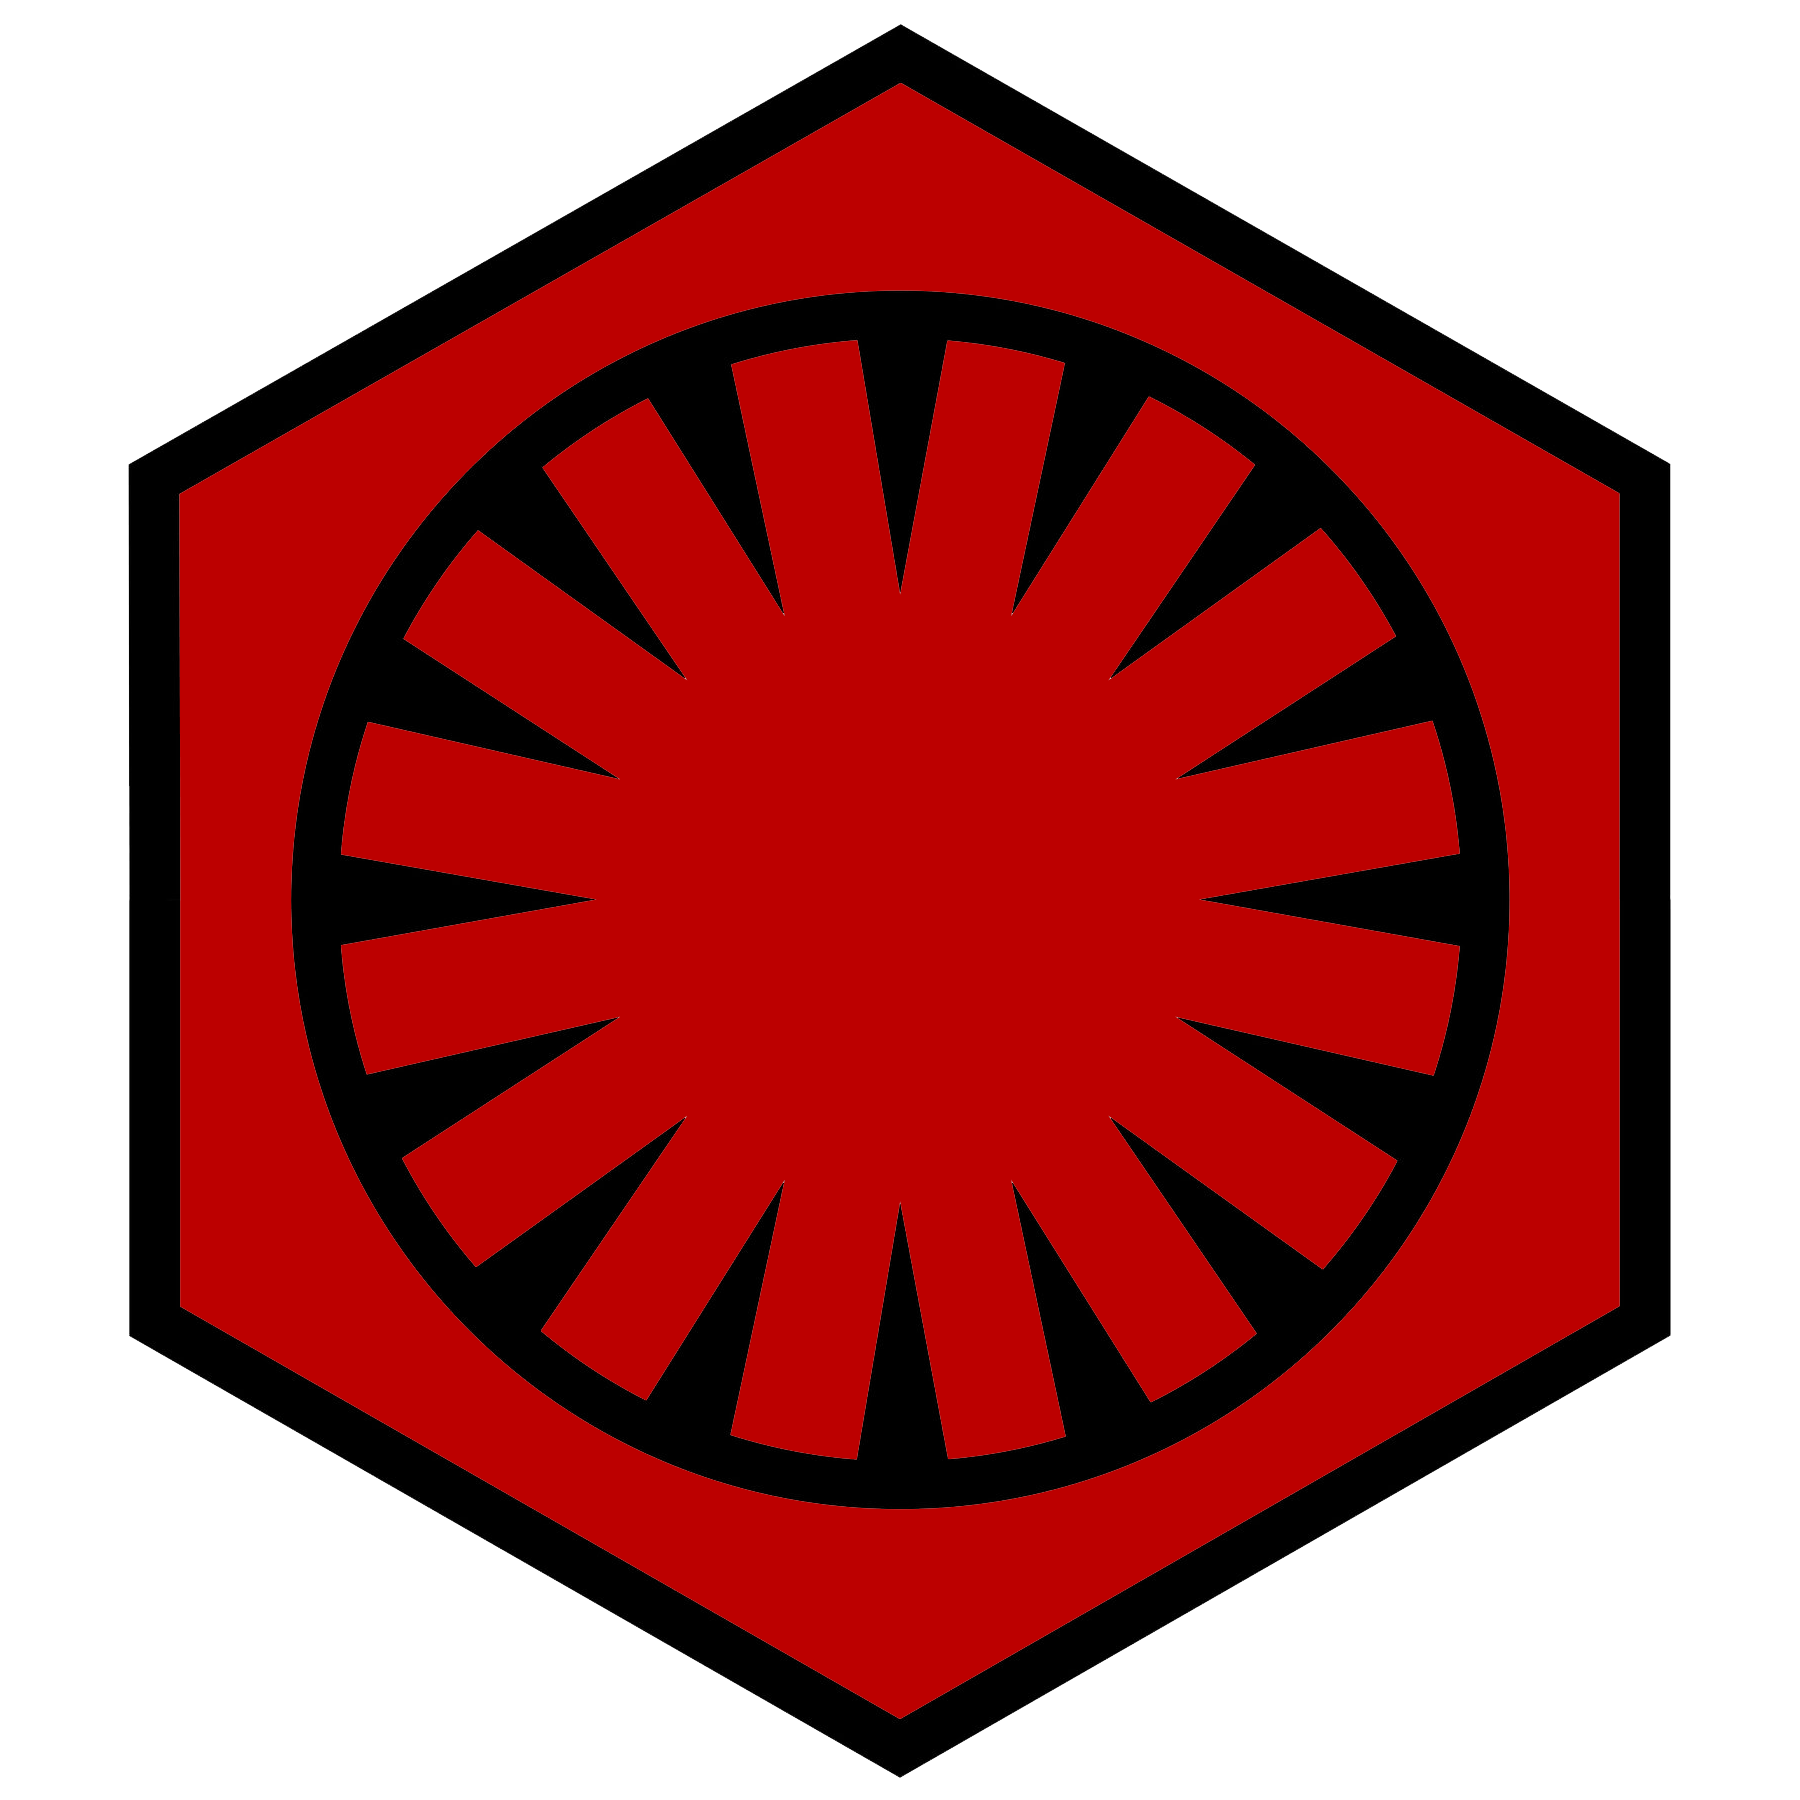 Emblem of the First Order Star Wars VII by RedRich1917 1800x1800